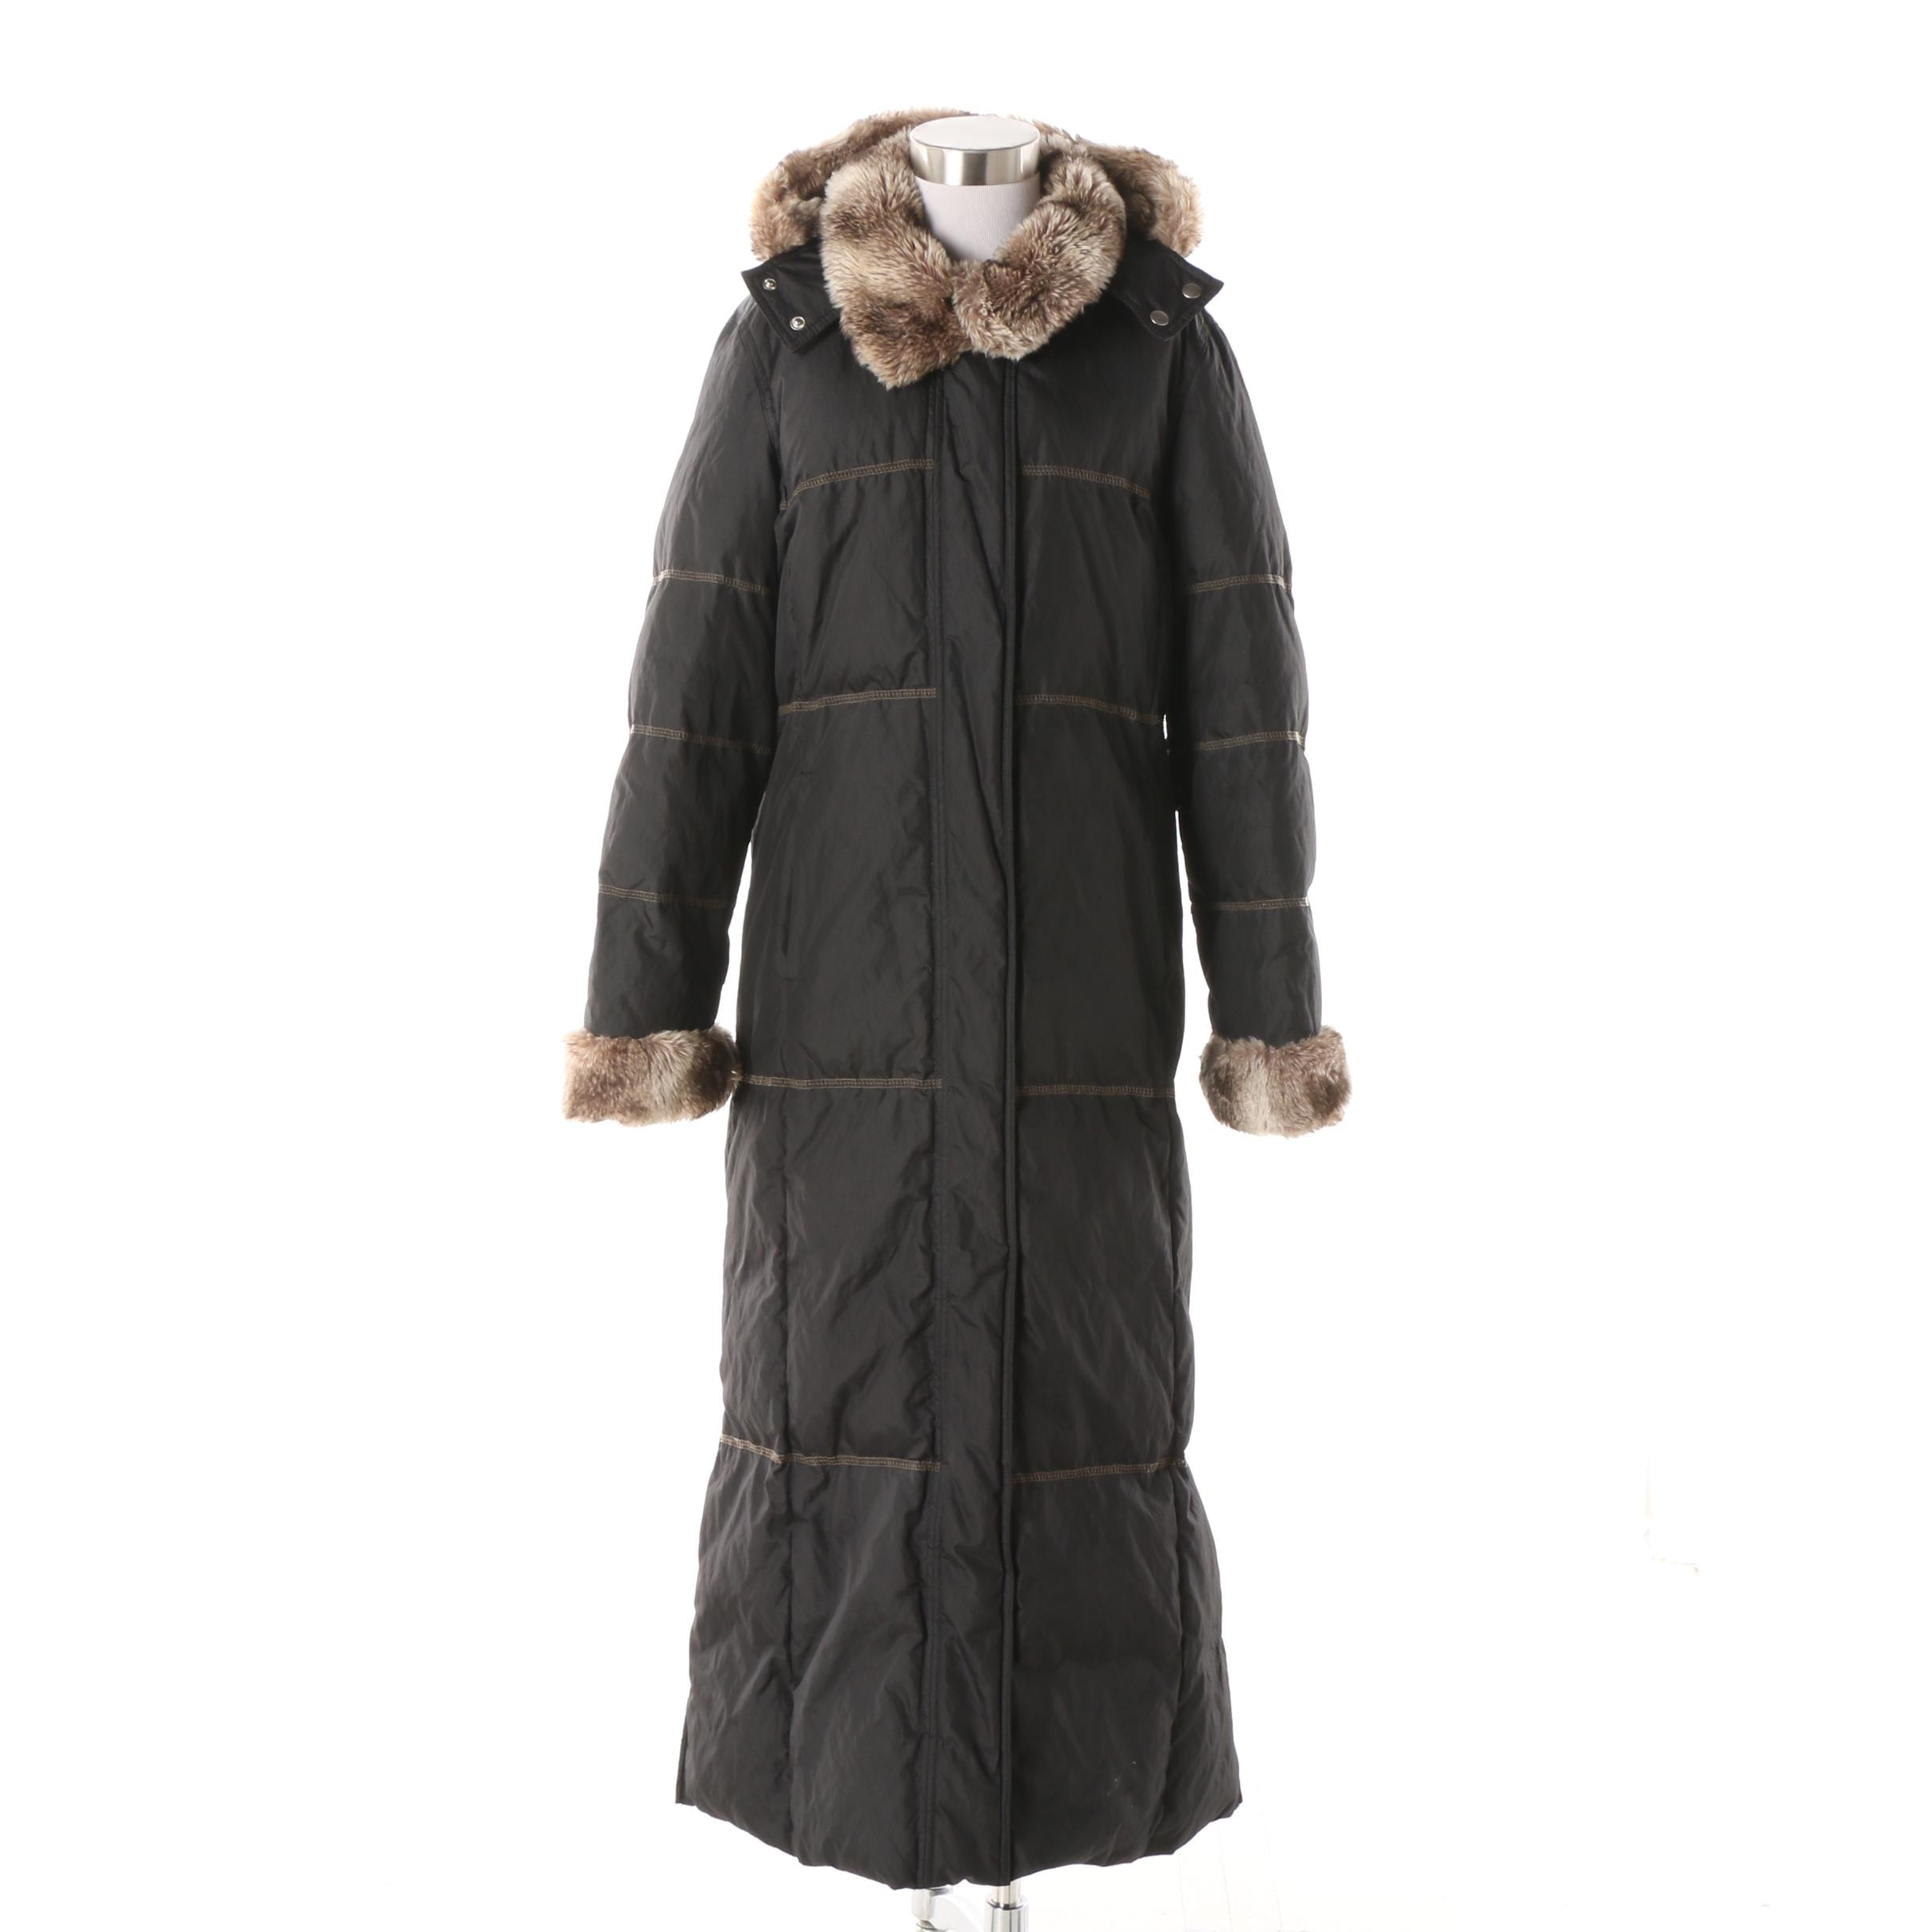 Women's Hilary Radley New York Down Filled Winter Coat with Faux Fur Trim